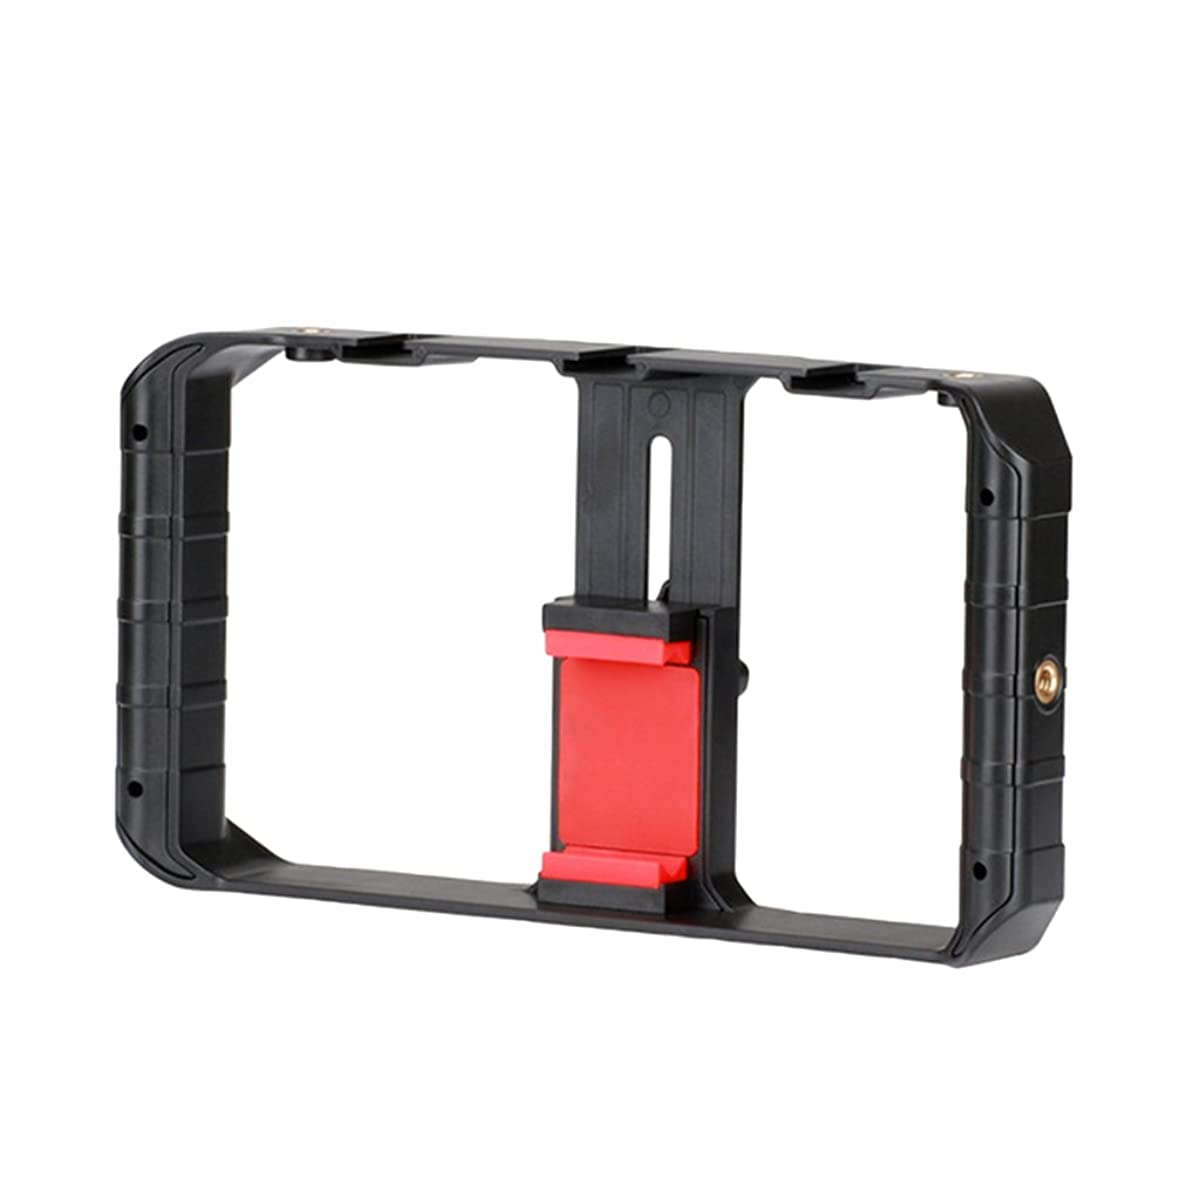 Homyl Ulanzi U-Rig Pro Smartphone Video Rig 3 Shoe Mounts Filmmaking Case Handheld Phone Video Stabilizer Grip Tripod Mount Stand for iPhone X 8 8 Plus Samsung S8 and More